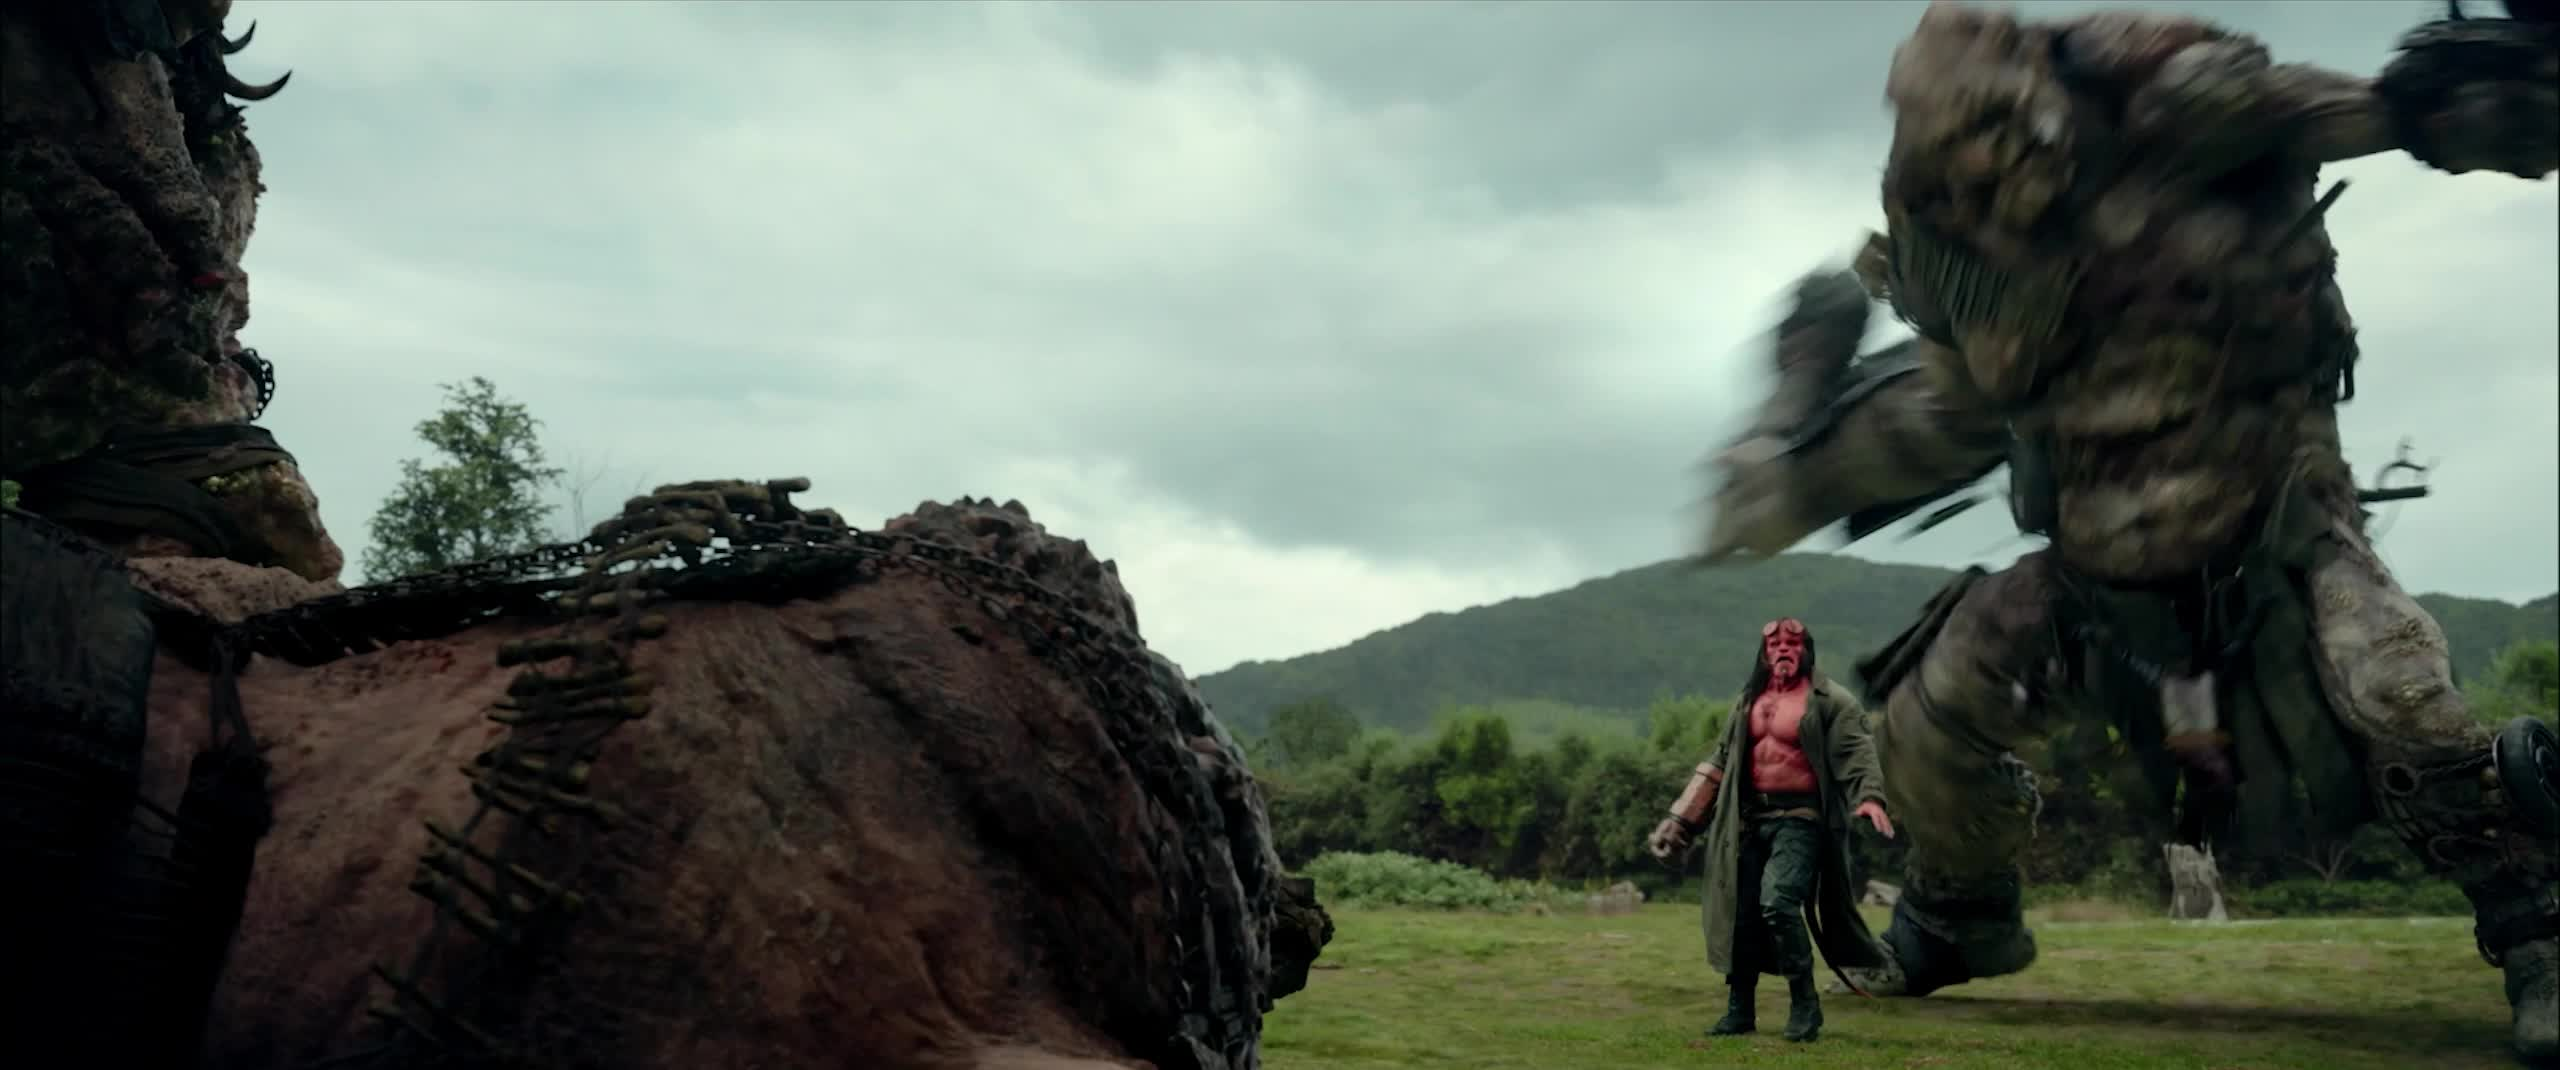 dark horse, dark horse comics, david harbour, good morning, hellboy, hellboy 2019, hellboy movie, monday, mondays, morning, smash, smashed, superhero, superheroes, wake up, Hellboy On A Monday GIFs